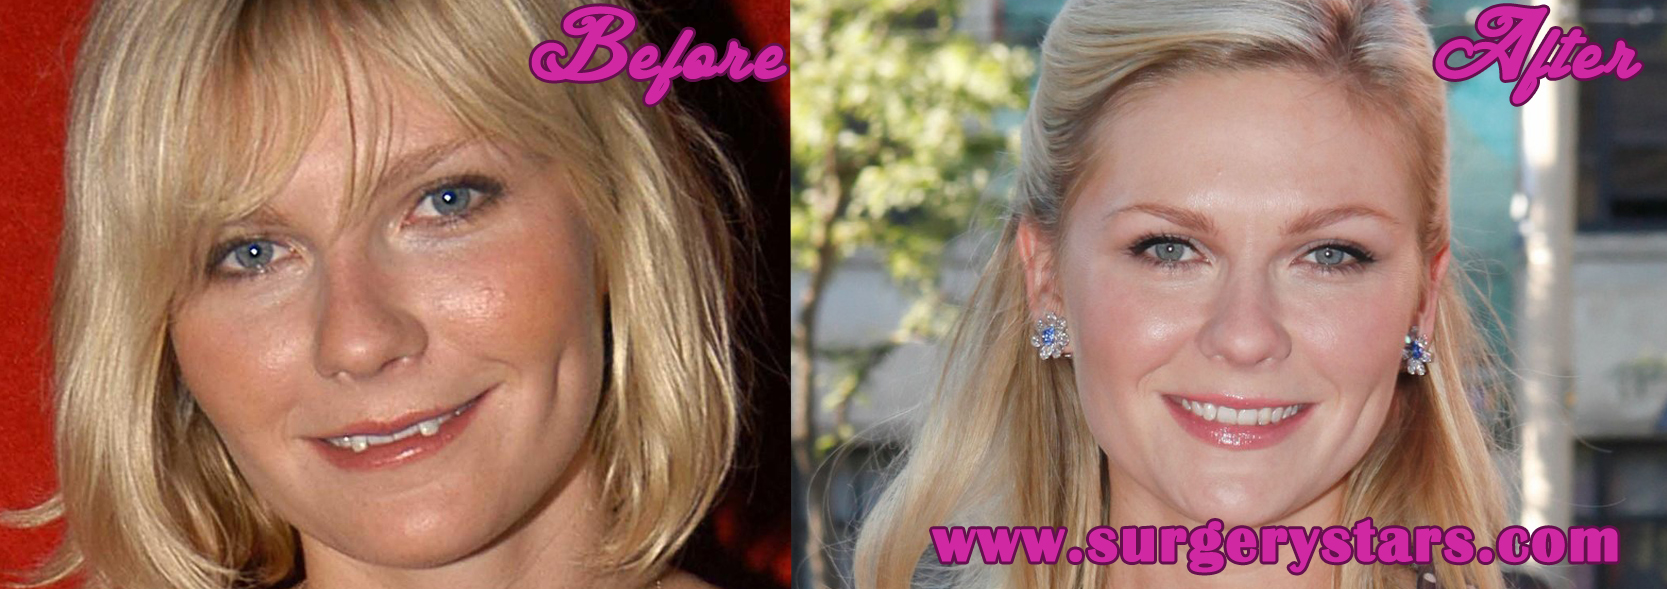 Kirsten Dunst Teeth Before and After Photos